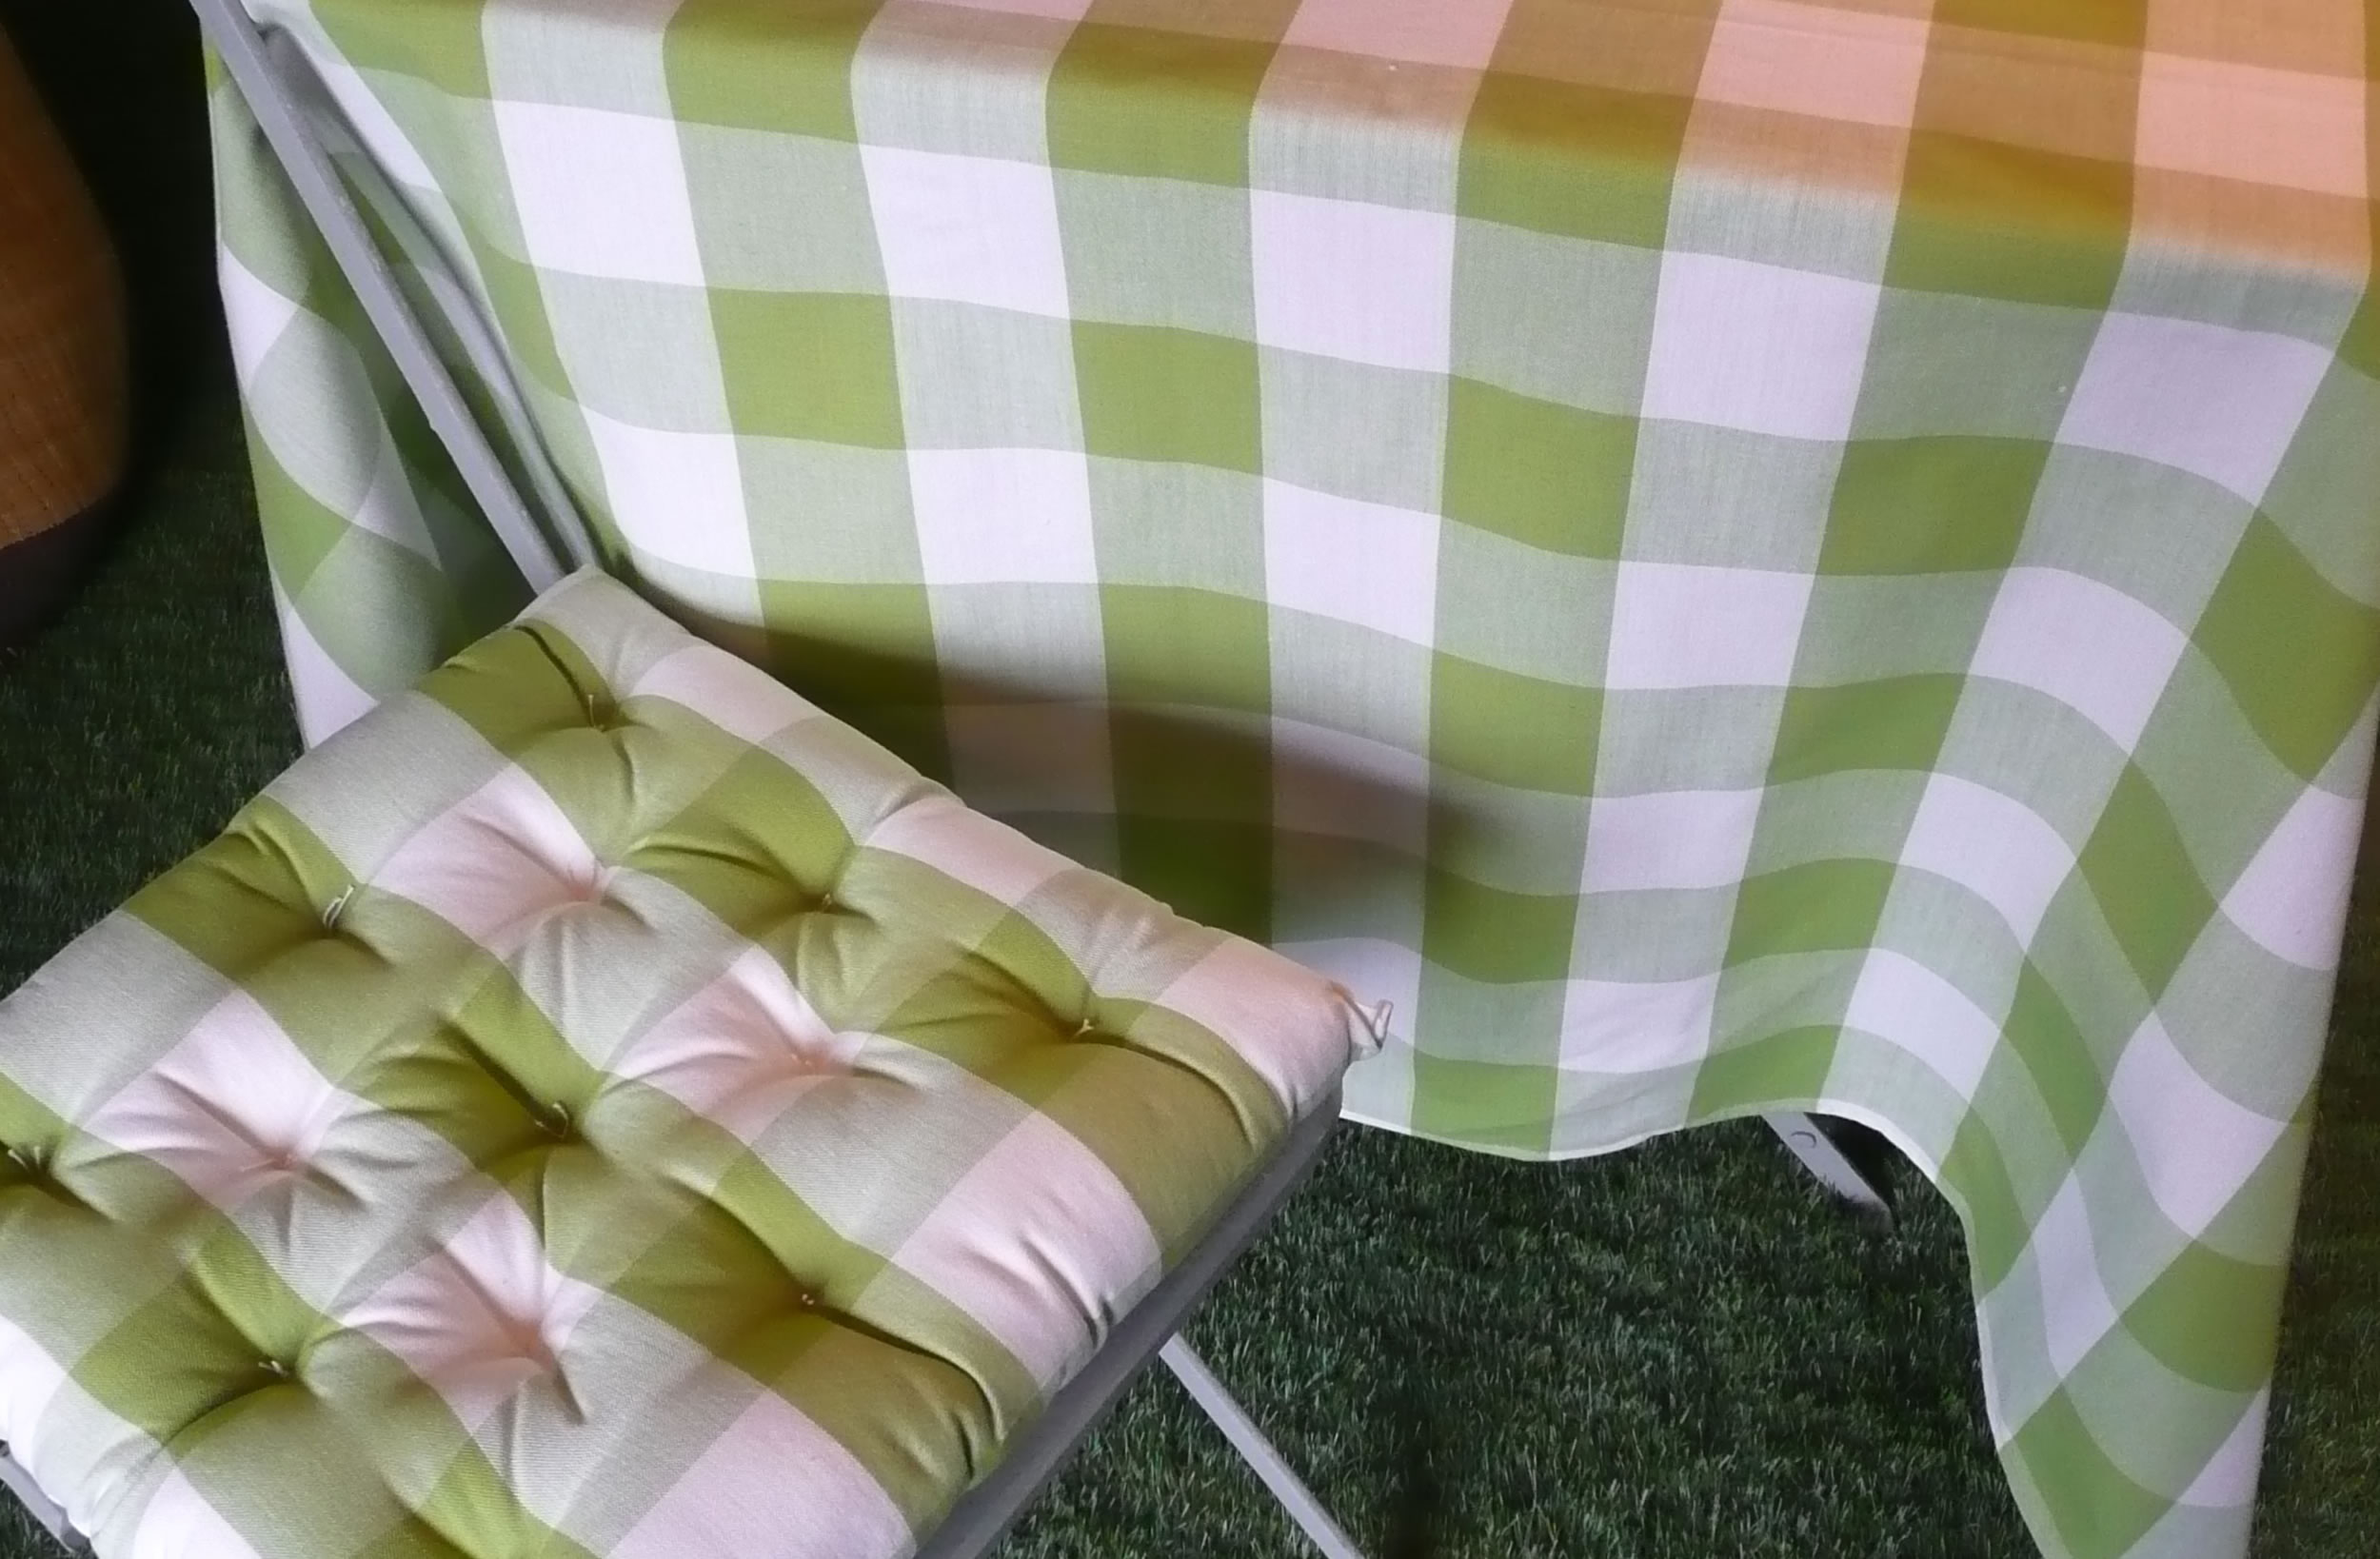 Gingham large Check Tablecloths - Green & White Checks